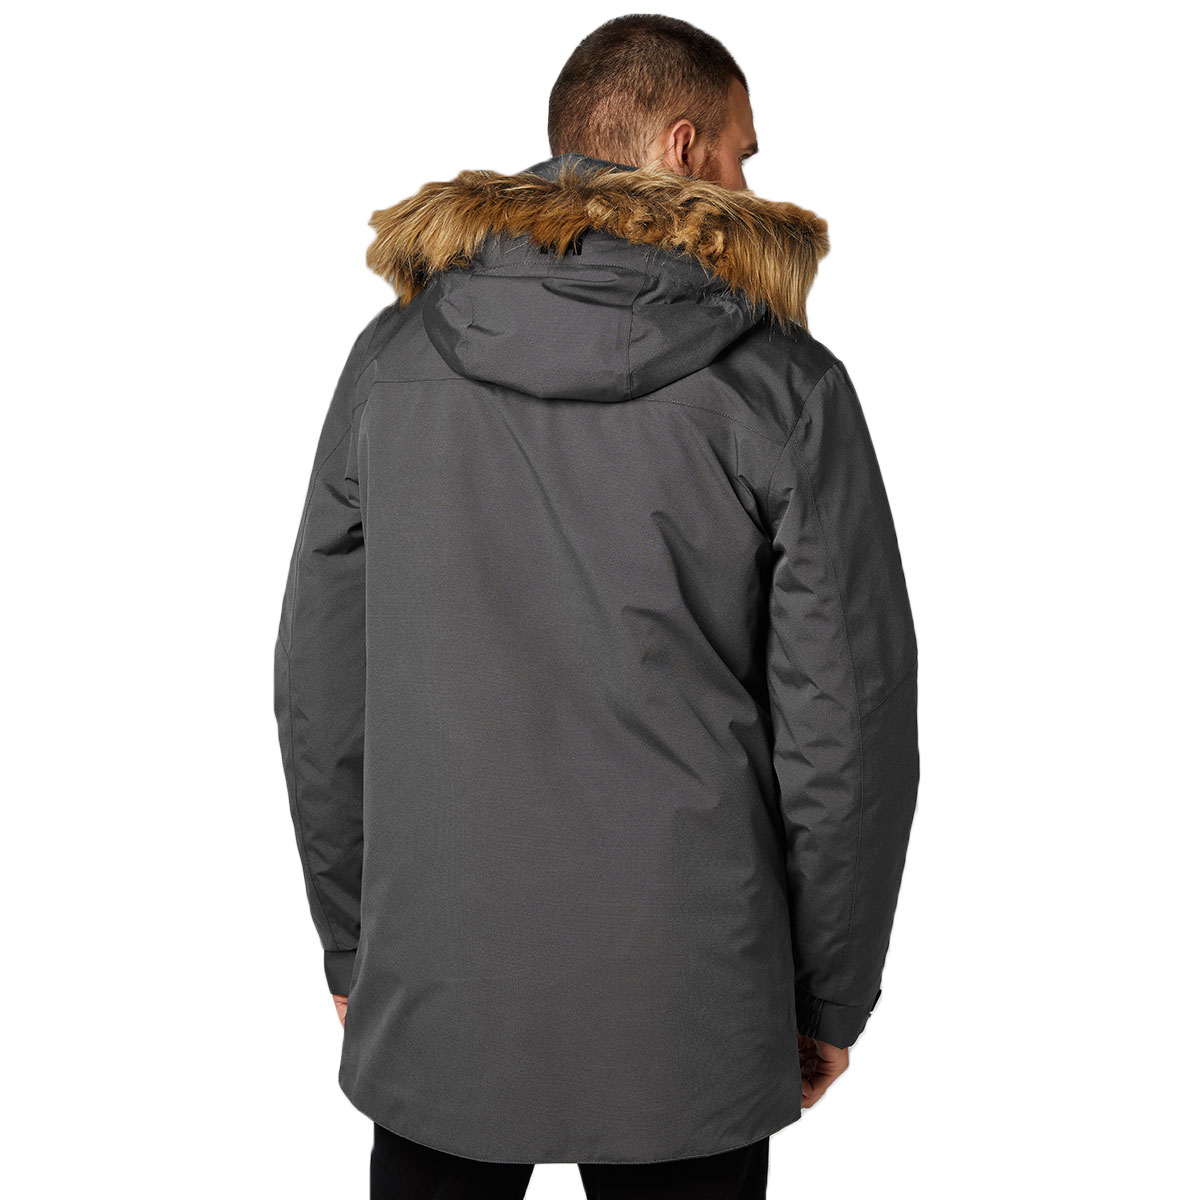 17edae39d Details about Helly Hansen Mens Dubliner Insulated Waterproof Parka Jacket  28% OFF RRP